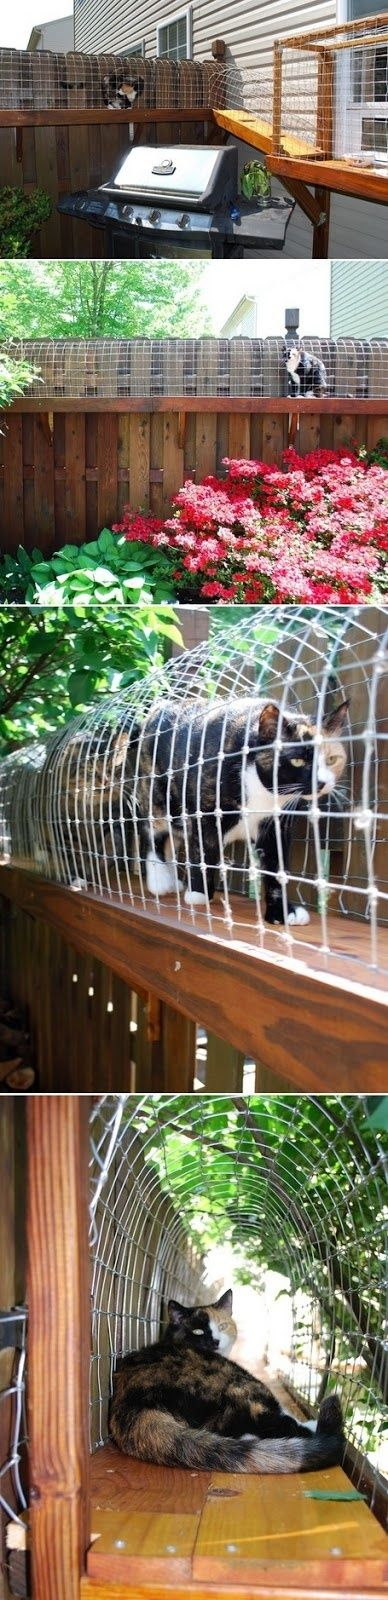 How to Build a Cat Enclosure..I kinda want one of these....